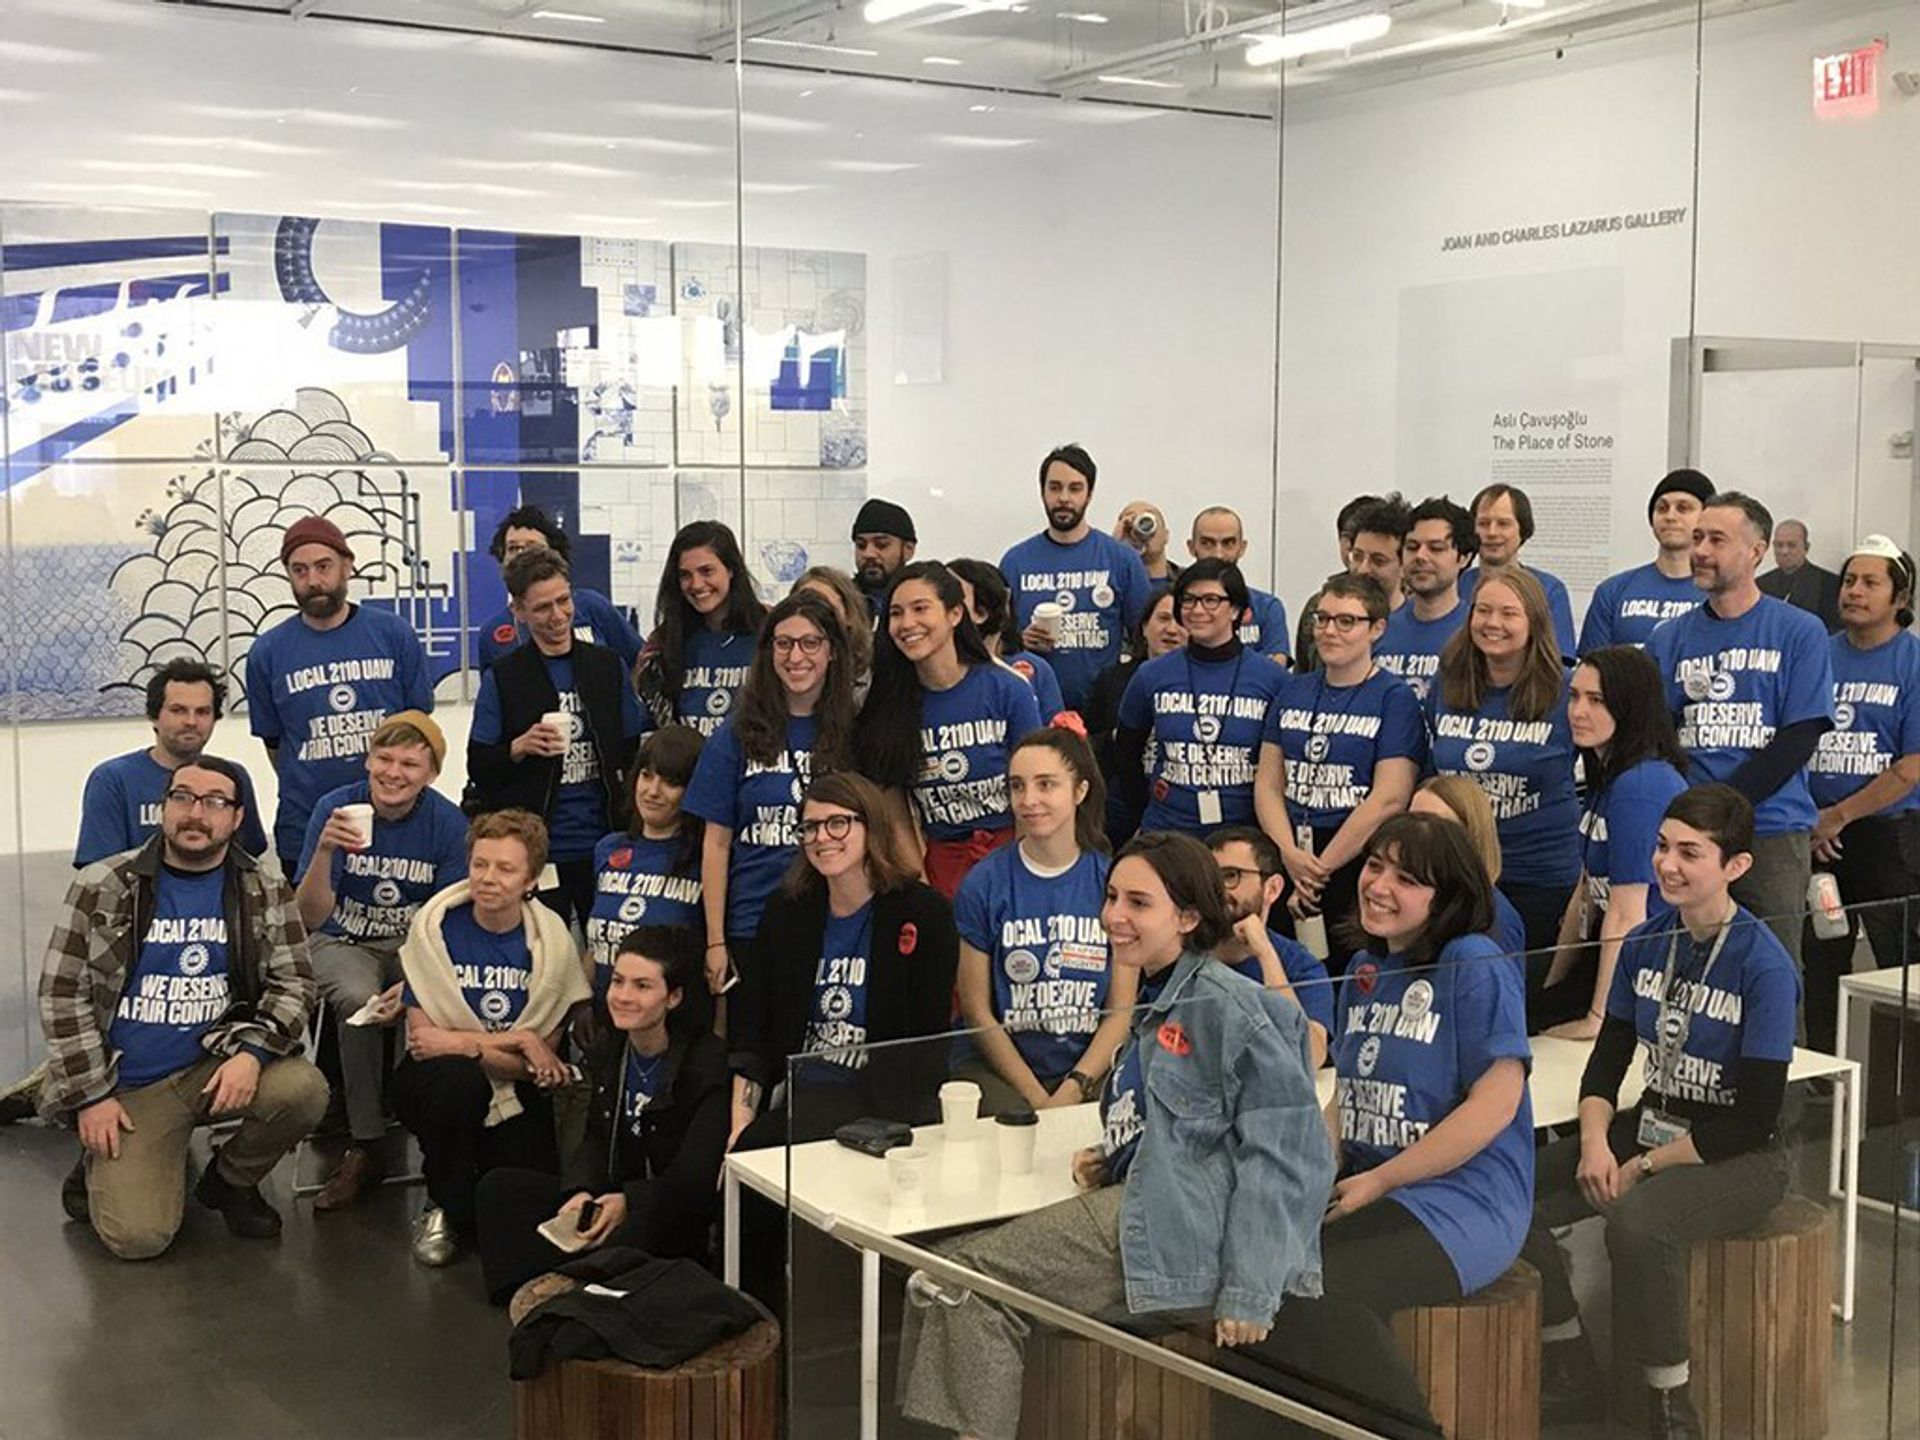 New Museum employees during their union organising campaign